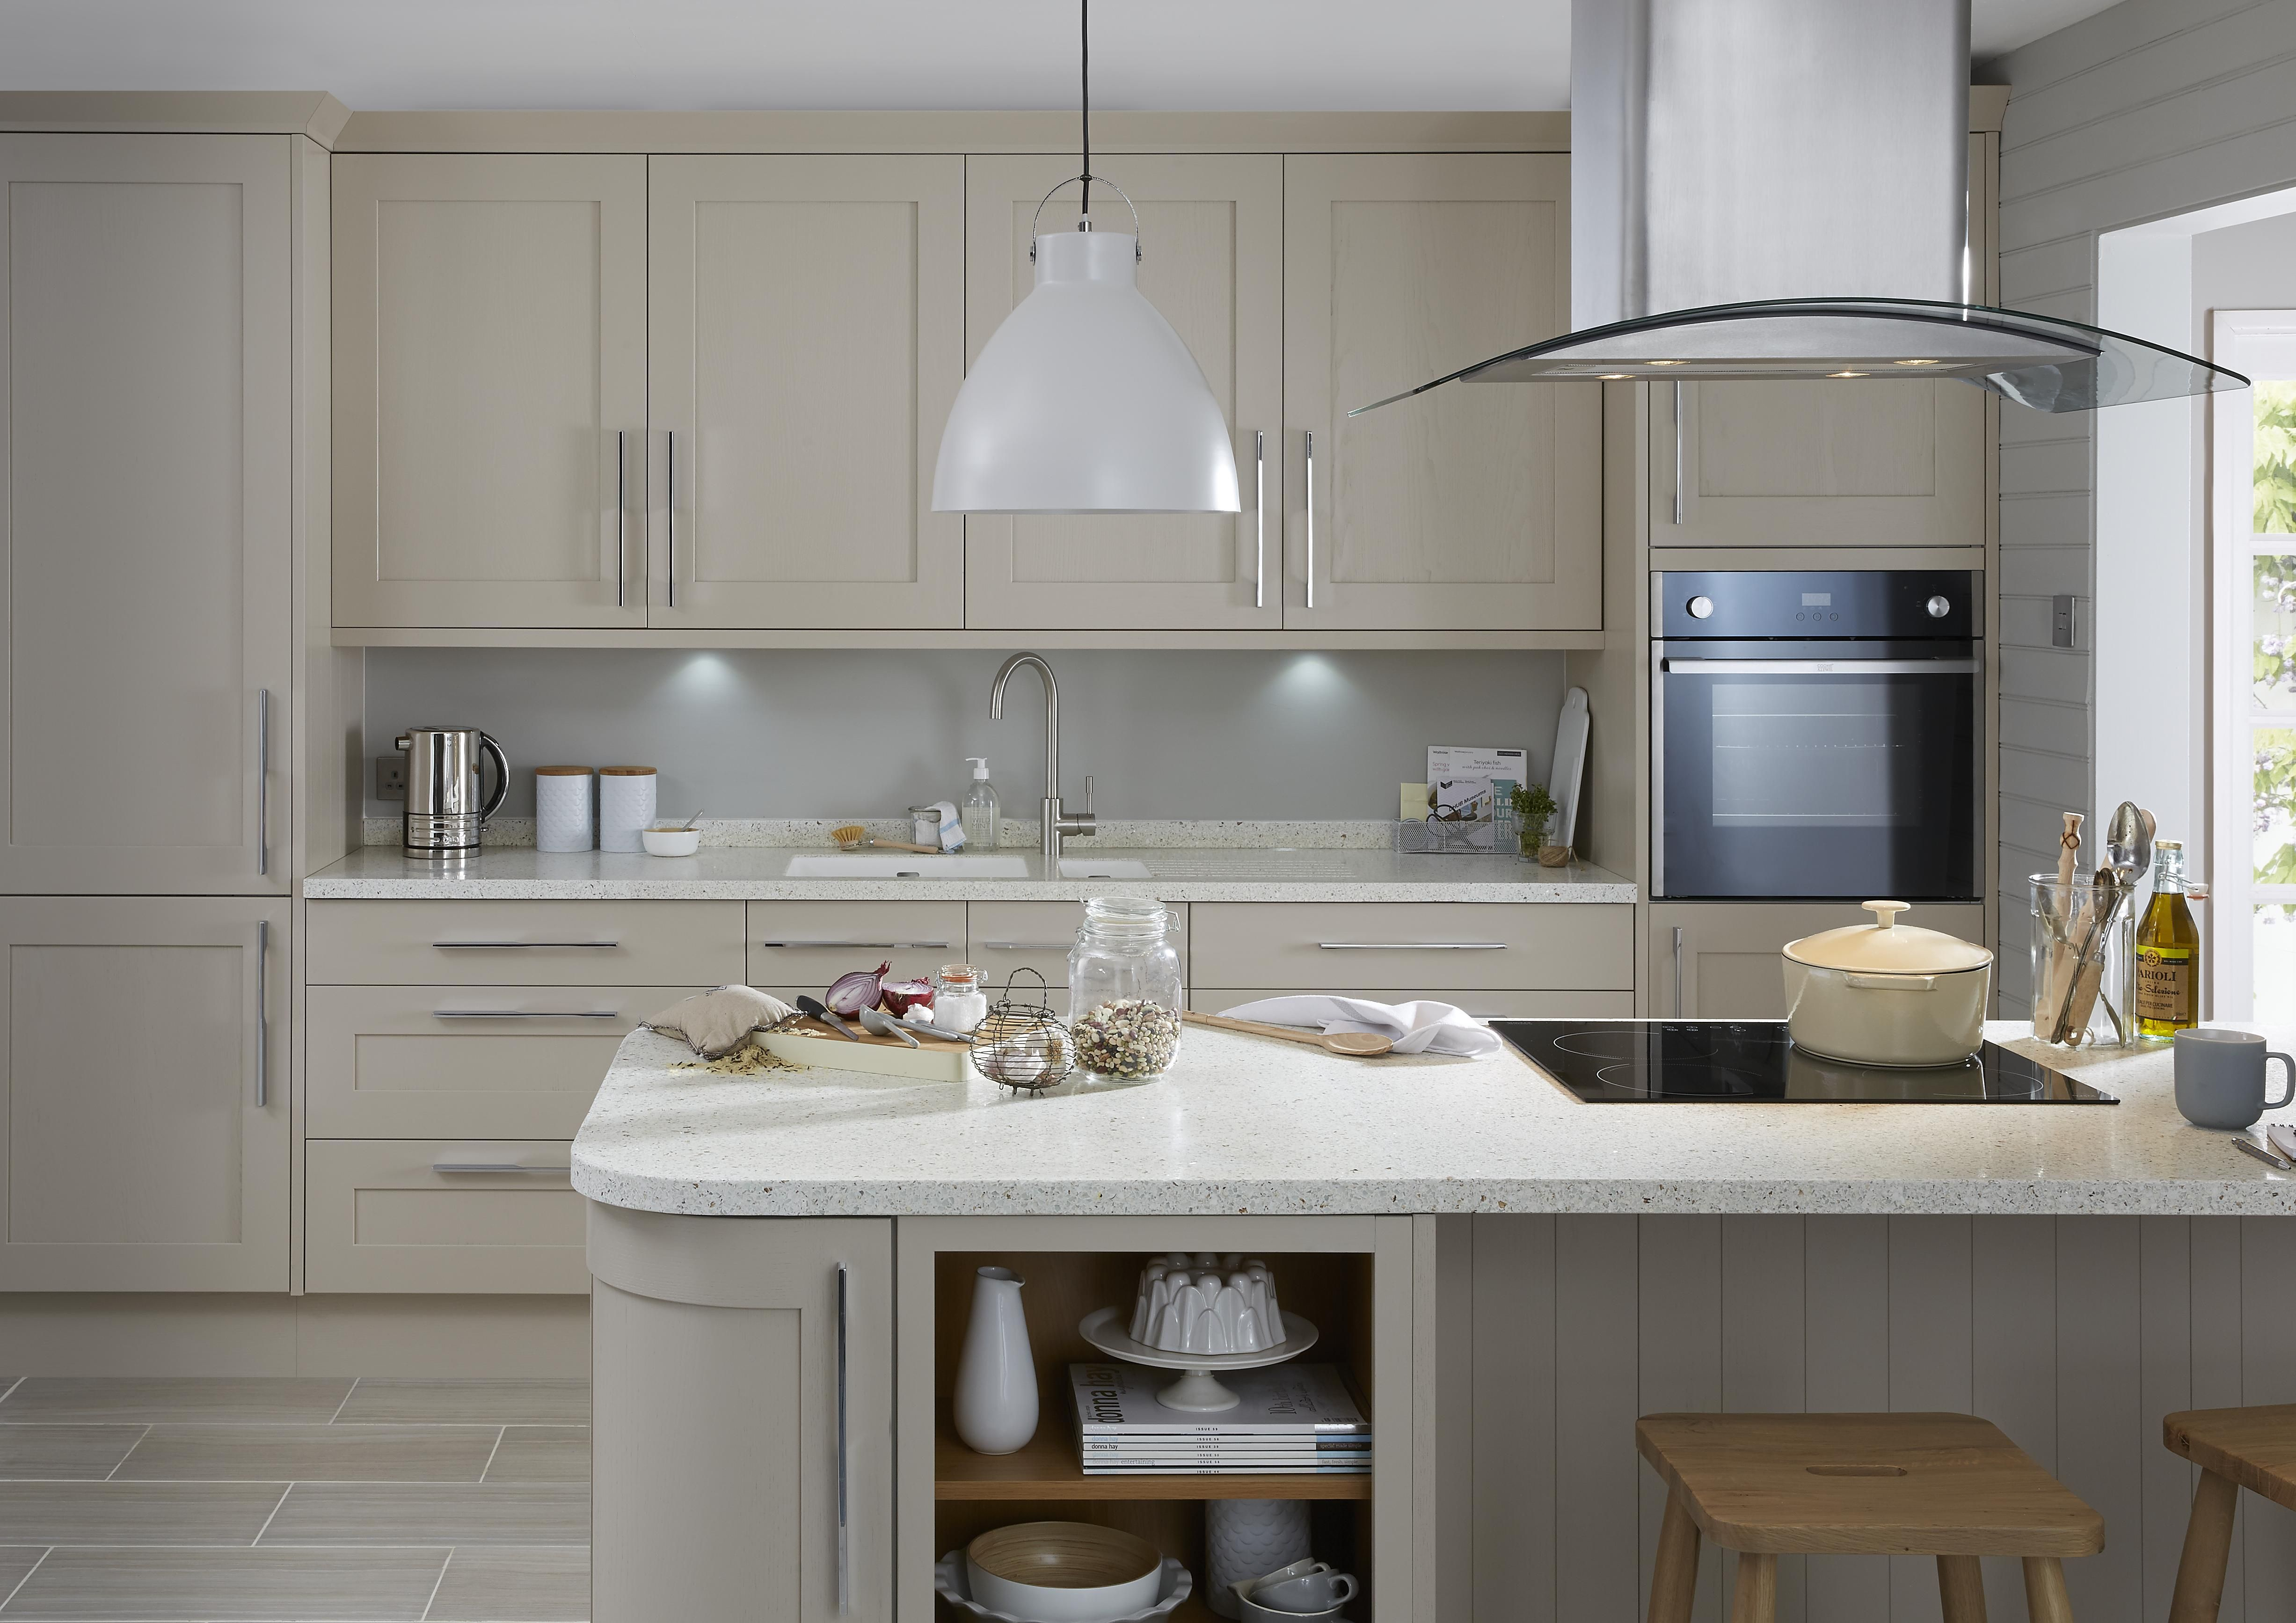 Our Carisbrooke Cashmere kitchen combines the best of